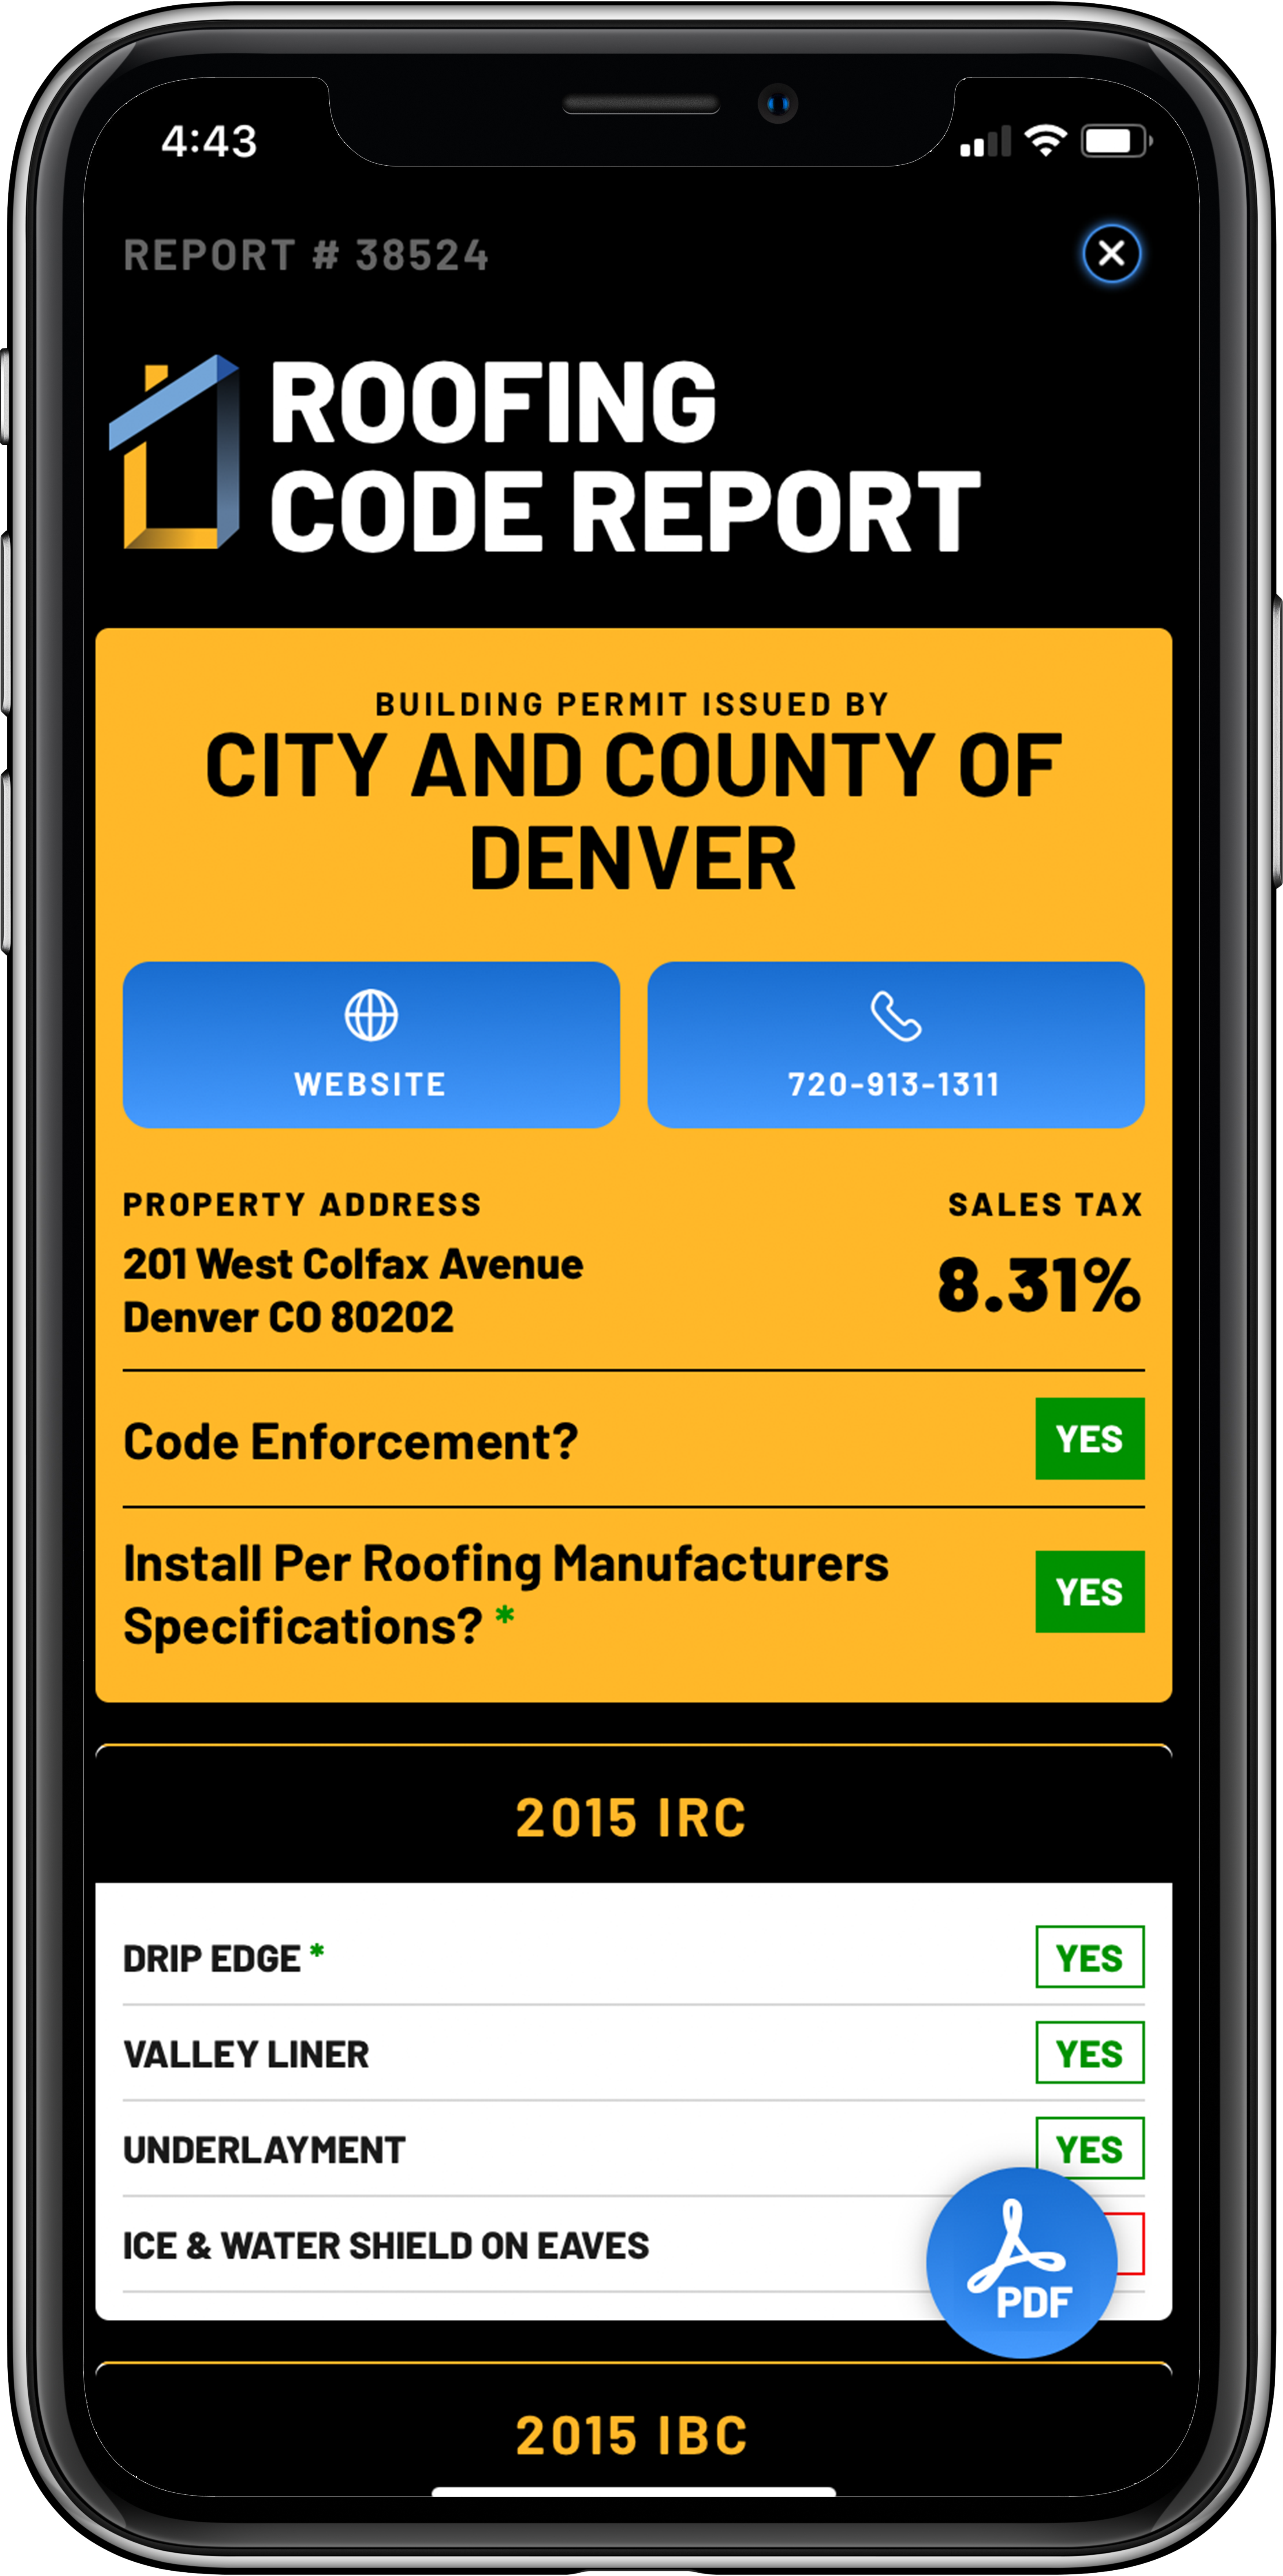 Roofing Code Report and Code Enforcement